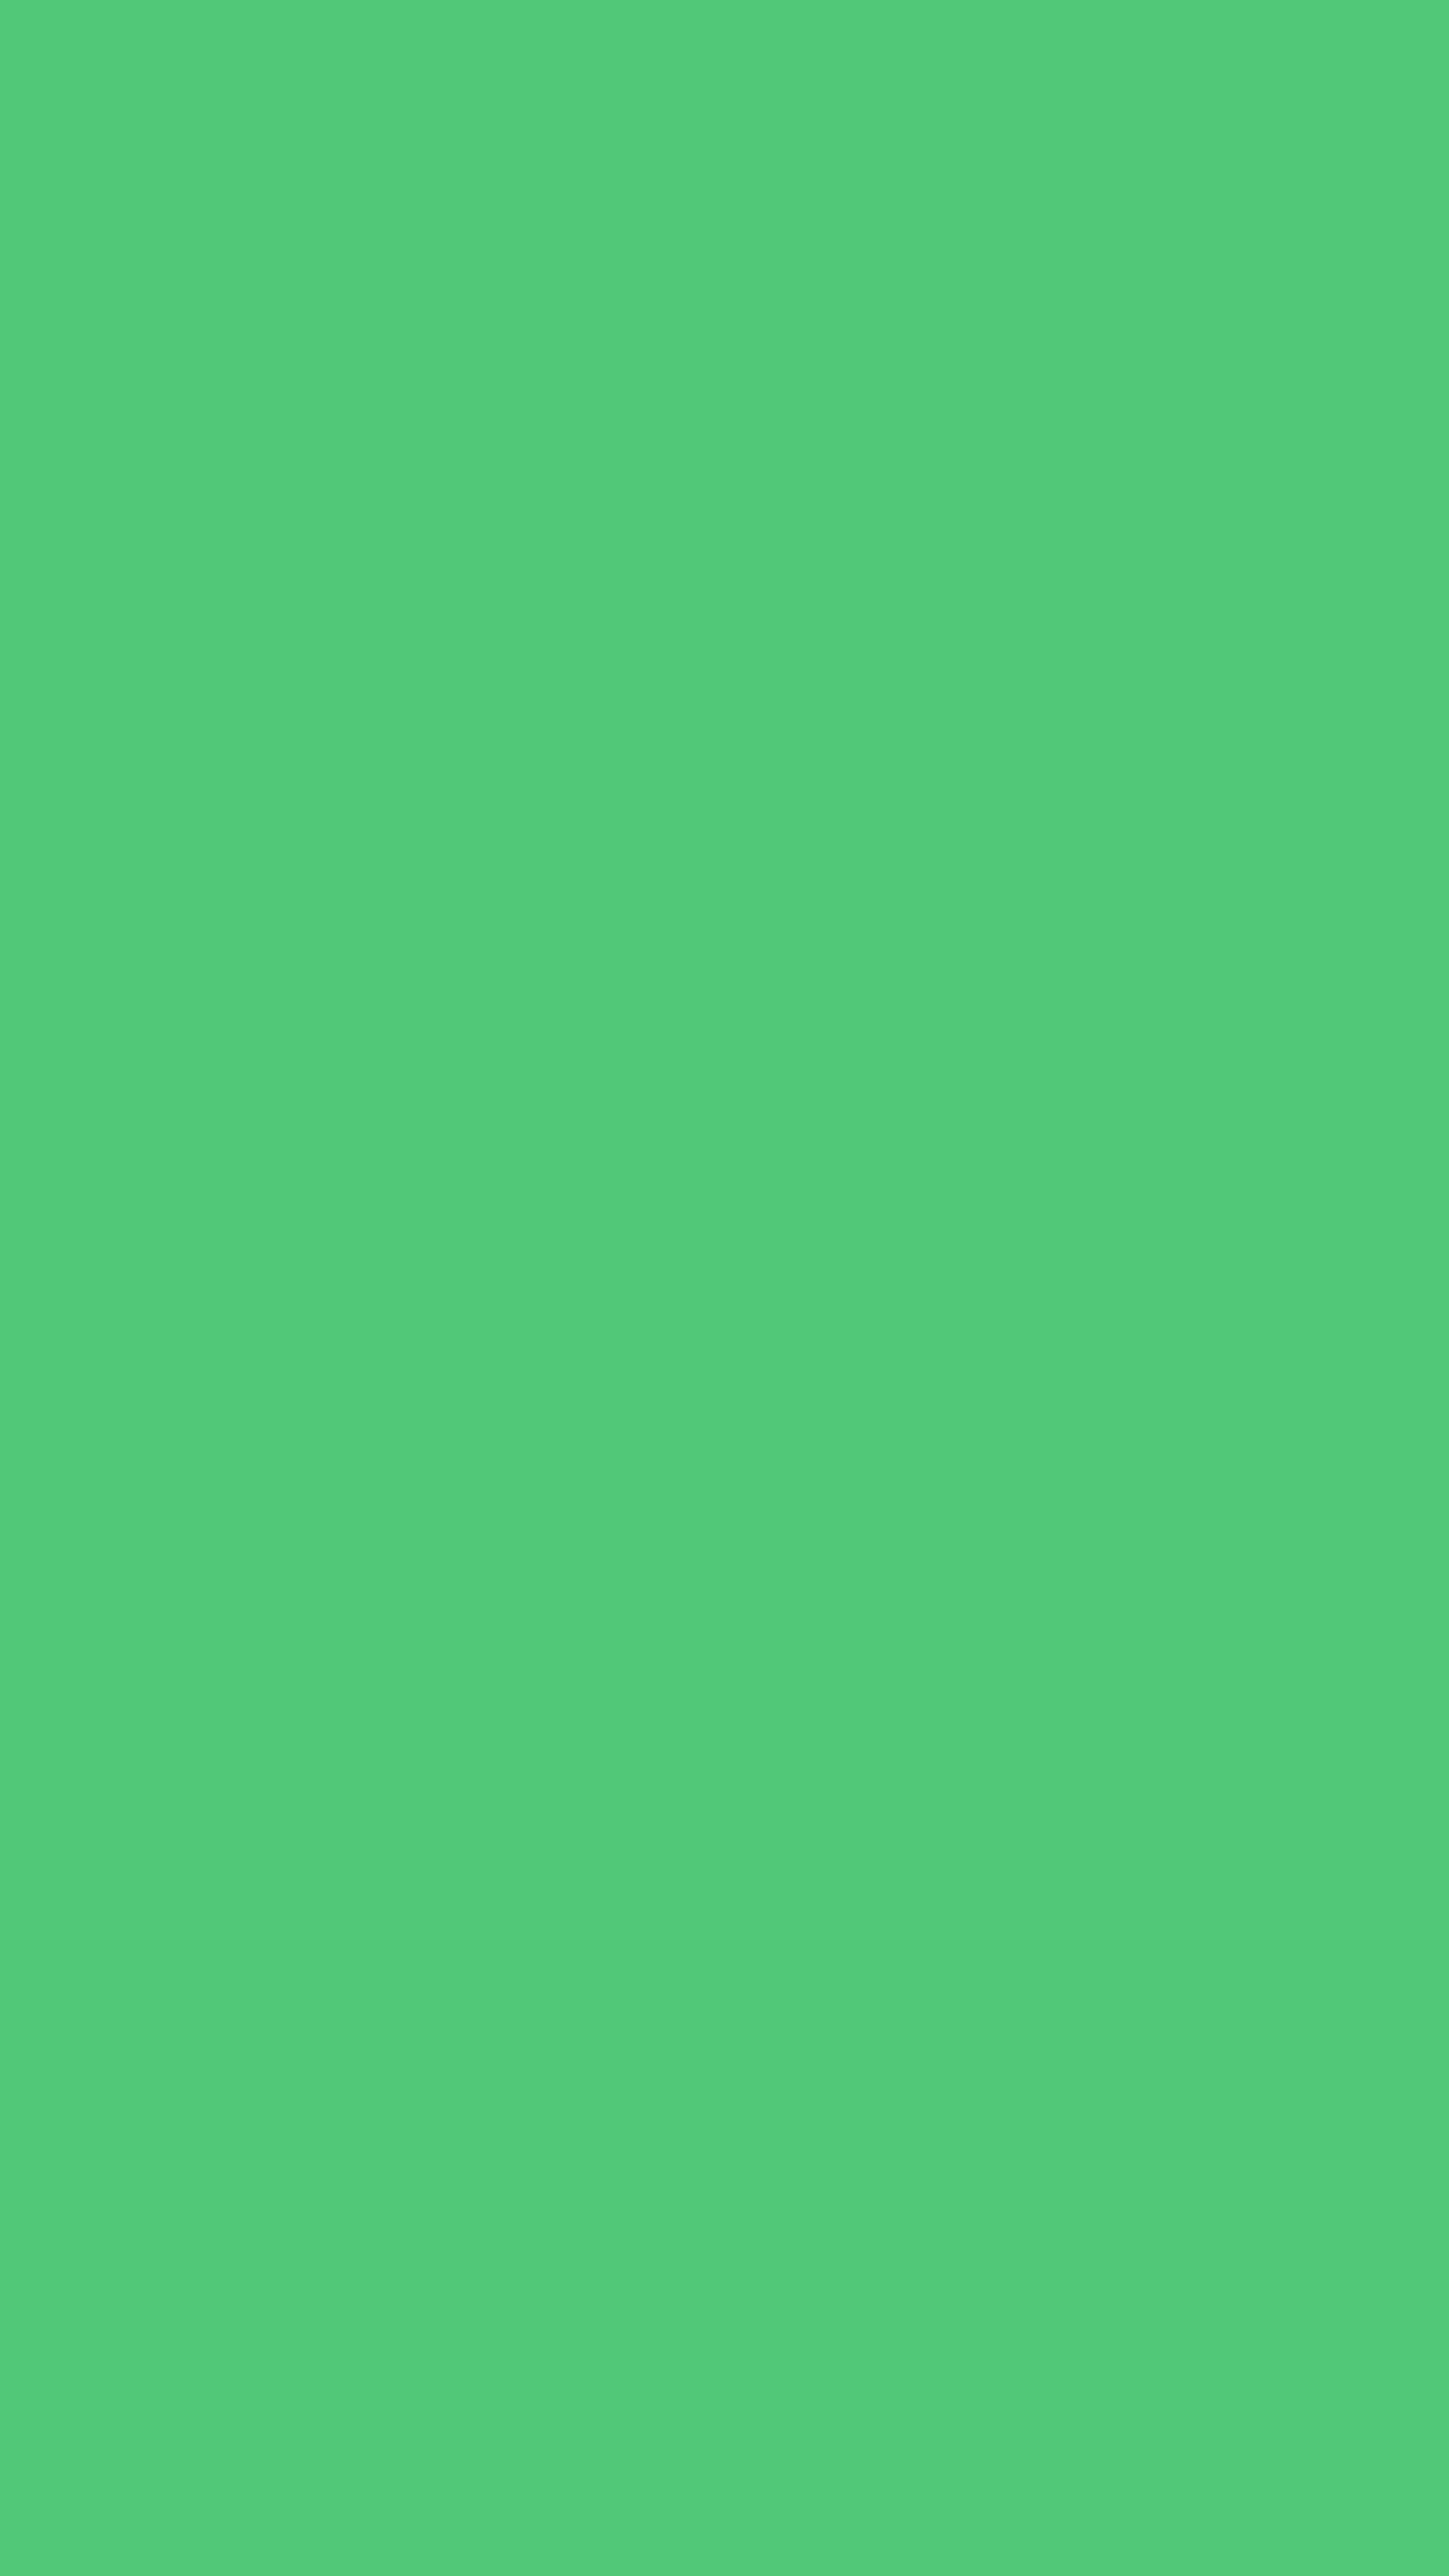 Emerald Solid Color Background Wallpaper for Mobile Phone 2160x3840